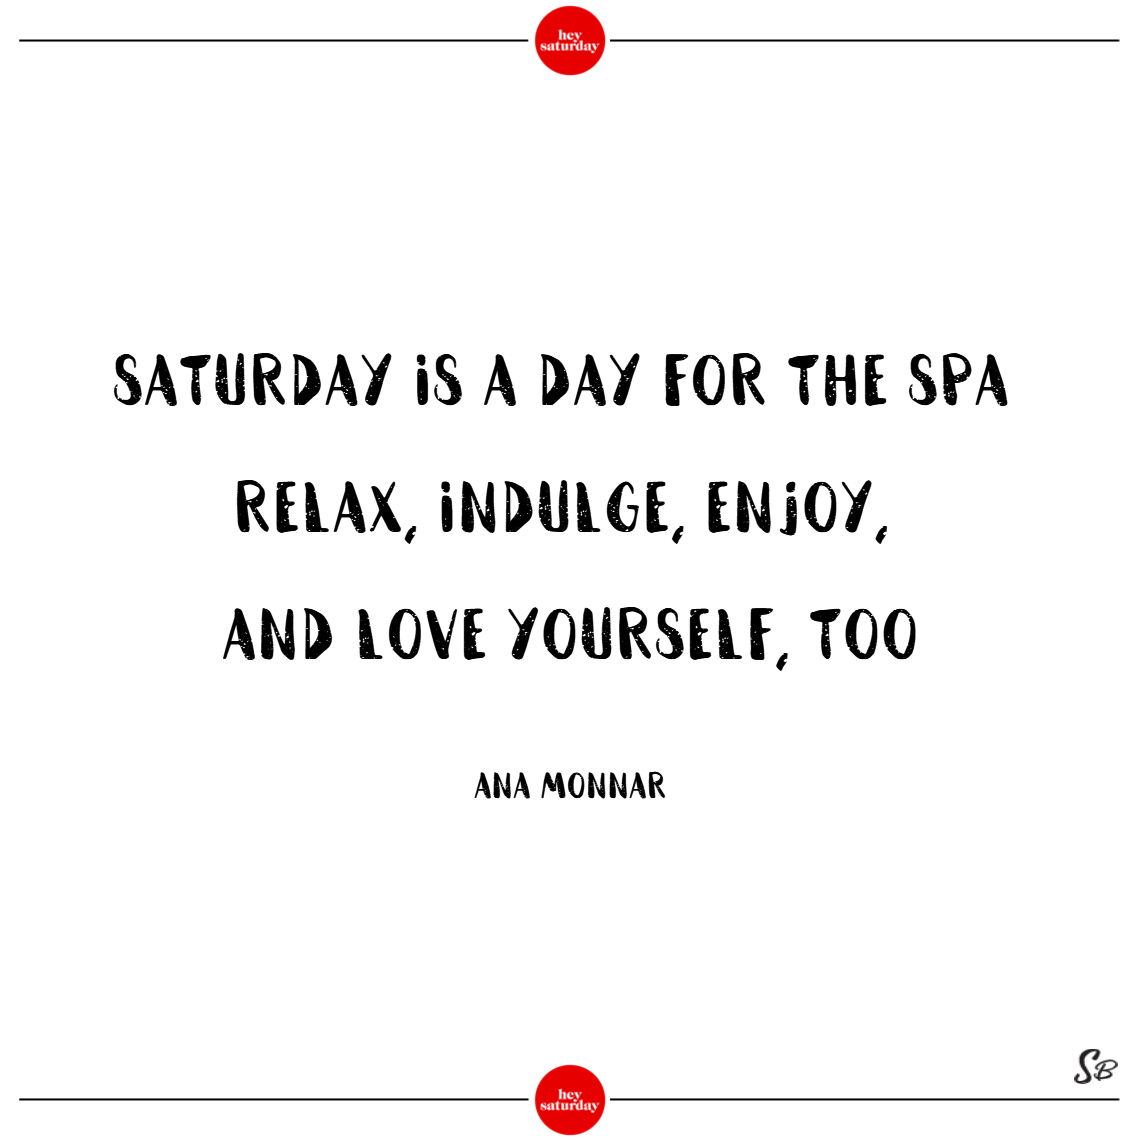 Saturday is a day for the spa. relax, indulge, enjoy, and love yourself, too. – ana monnar